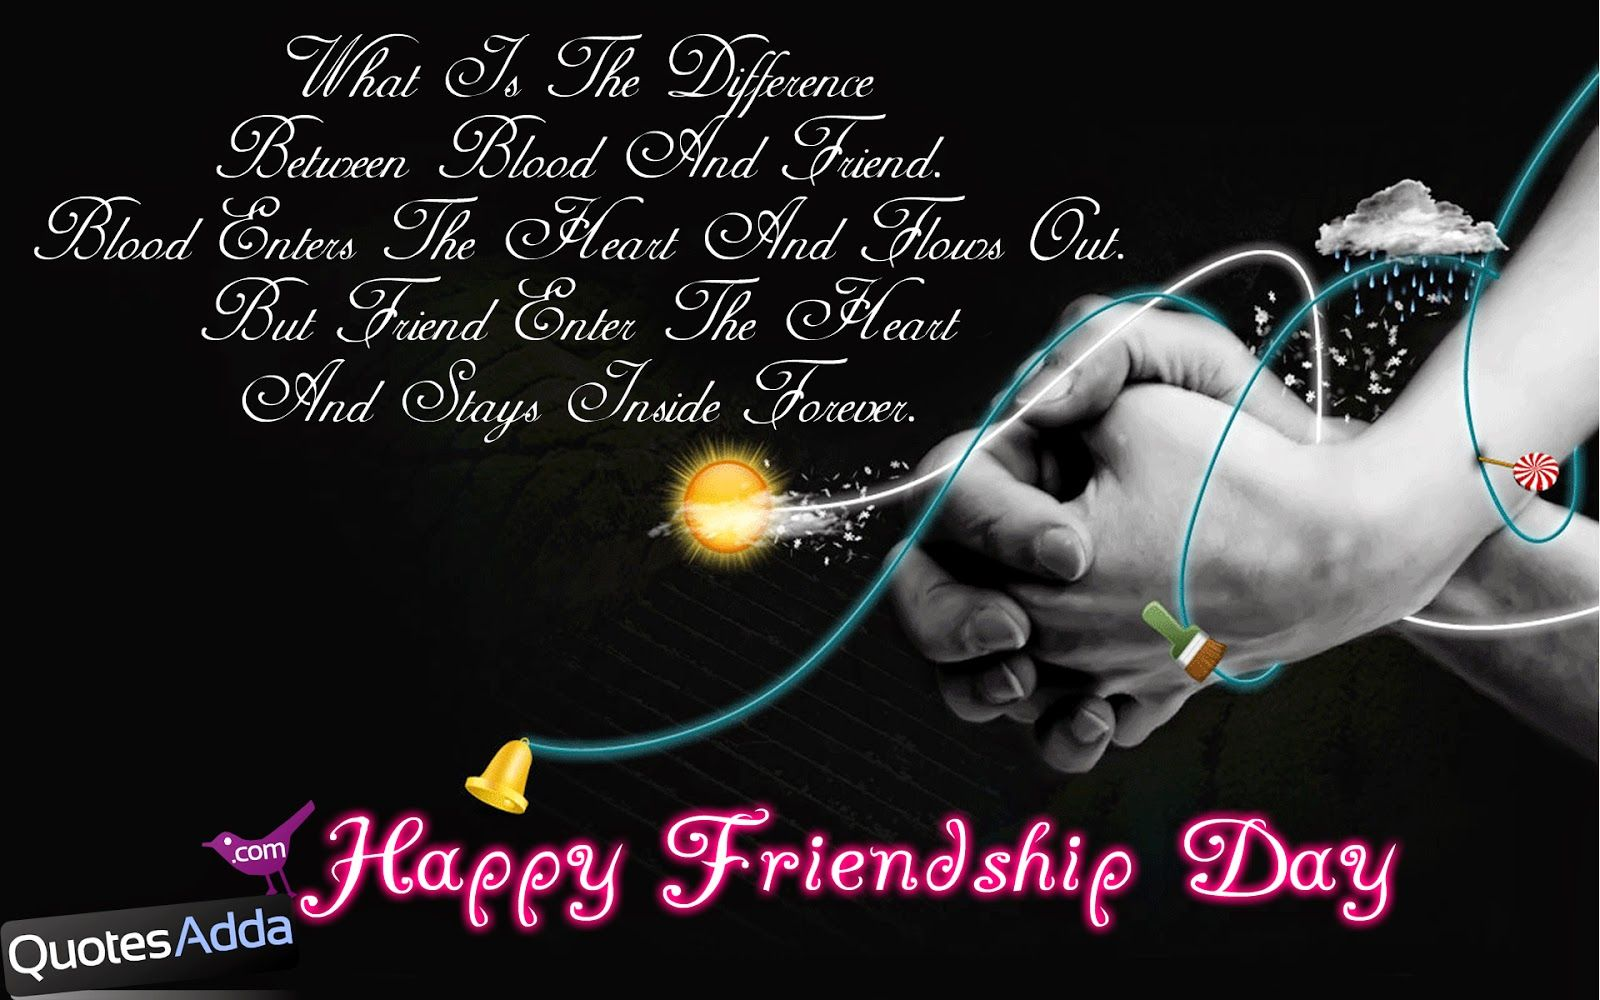 English Quotes About Friendship Friendship Day Quotes With Images In English  T0P Friendship